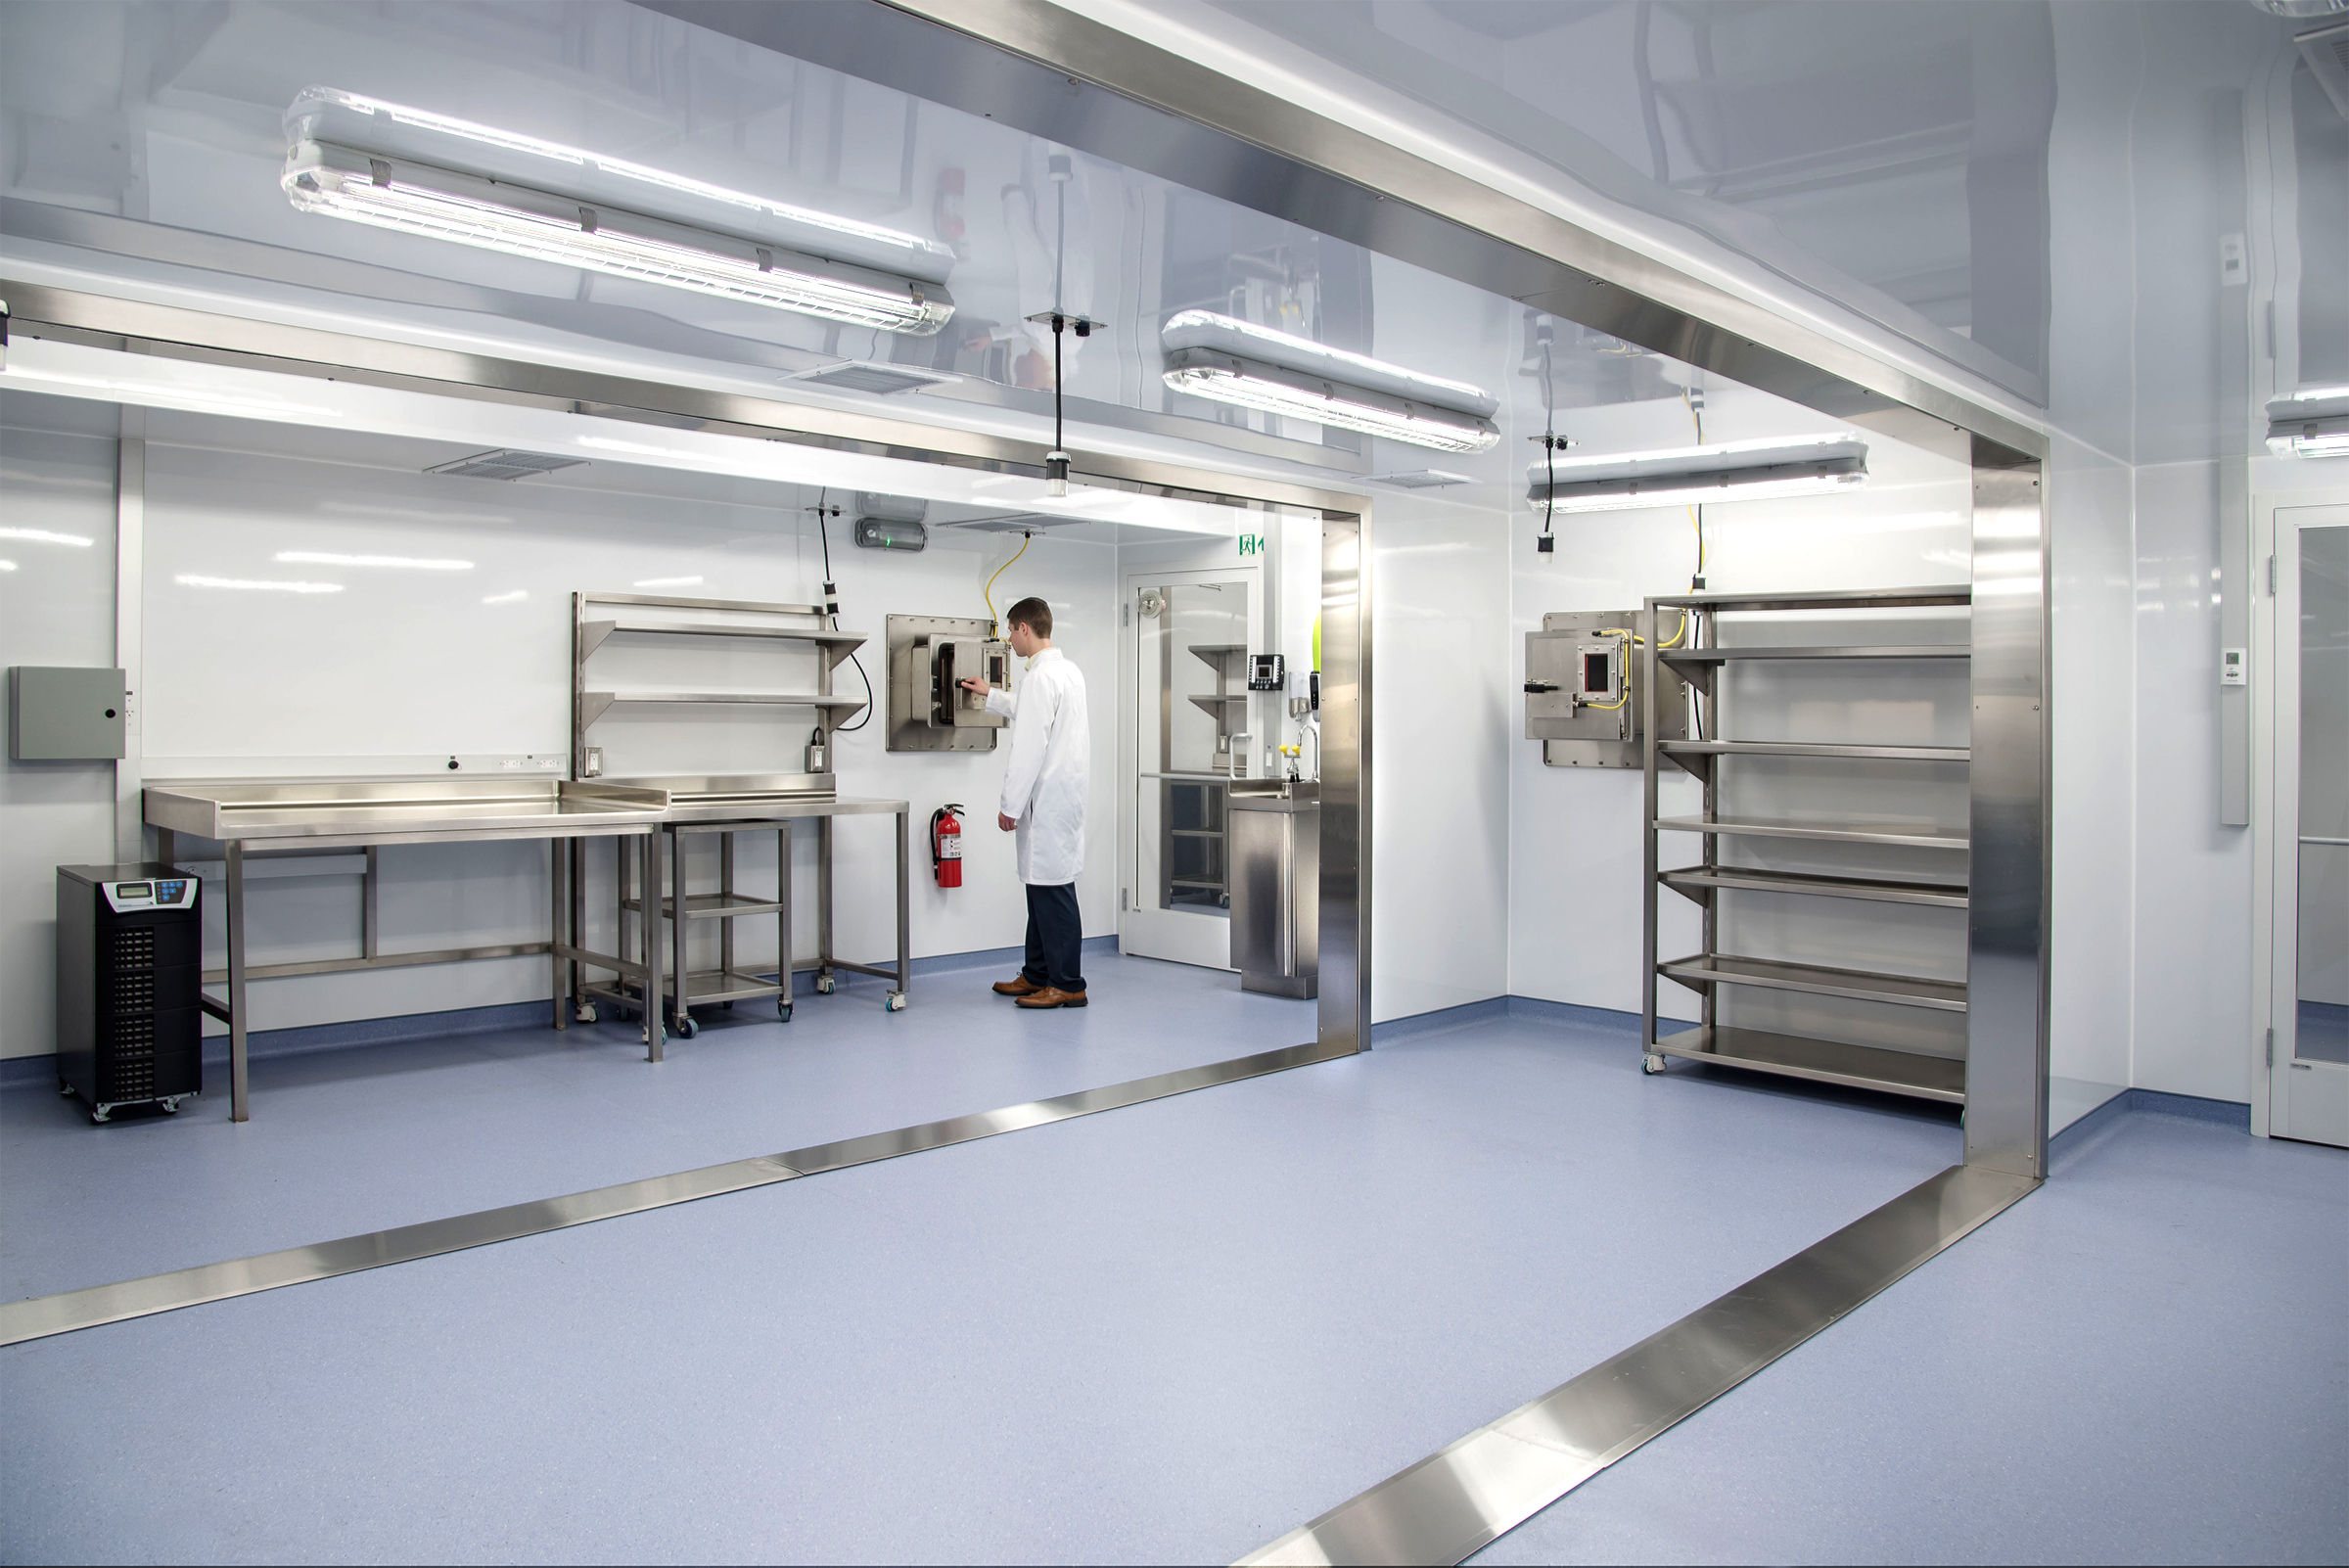 Germfree-Biosafety-Lab-Interior-Modular.jpg